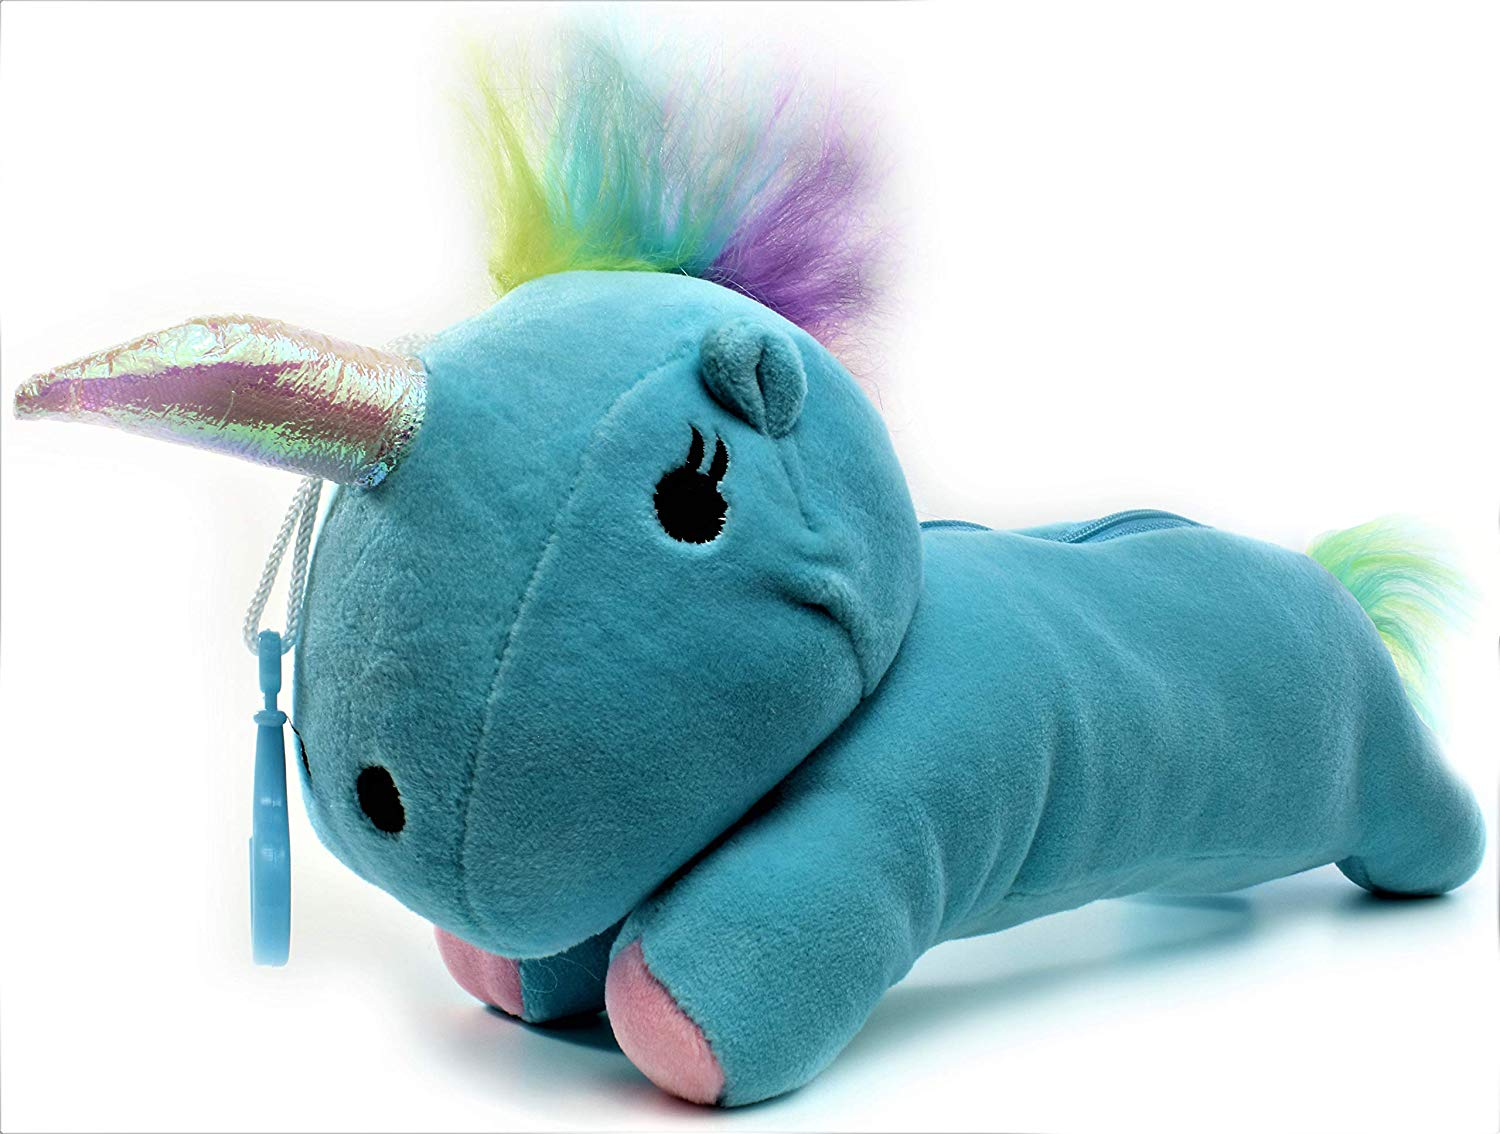 Unicorn Plush Toy Pencil Case Cute Animal Cartoon Bag Pouch Stationery for Kids, Girls, Boys, Teens (Blue)